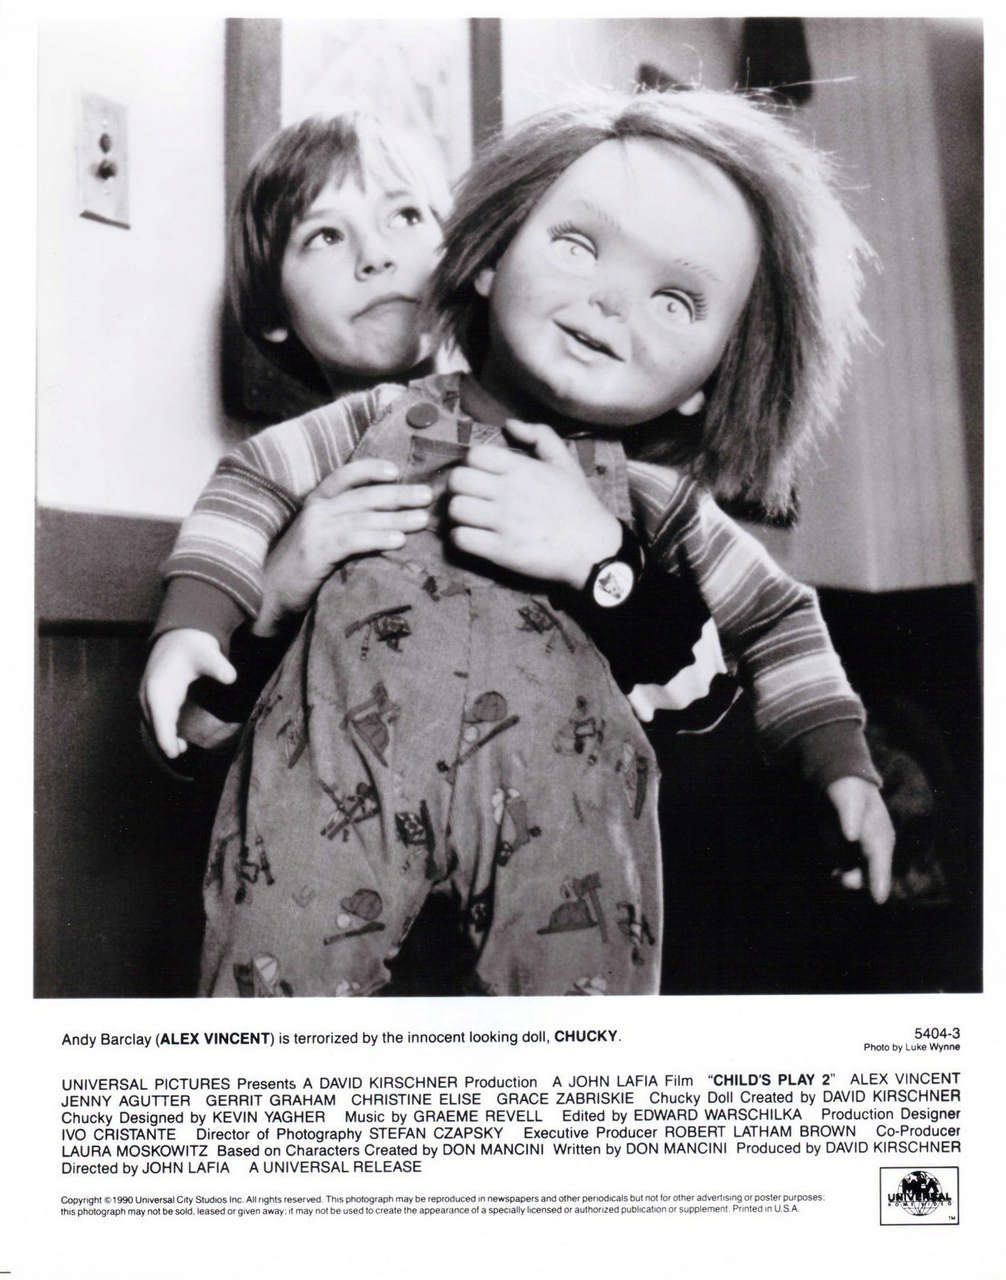 image from Child's Play 2 shows scale of Chucky vs human.